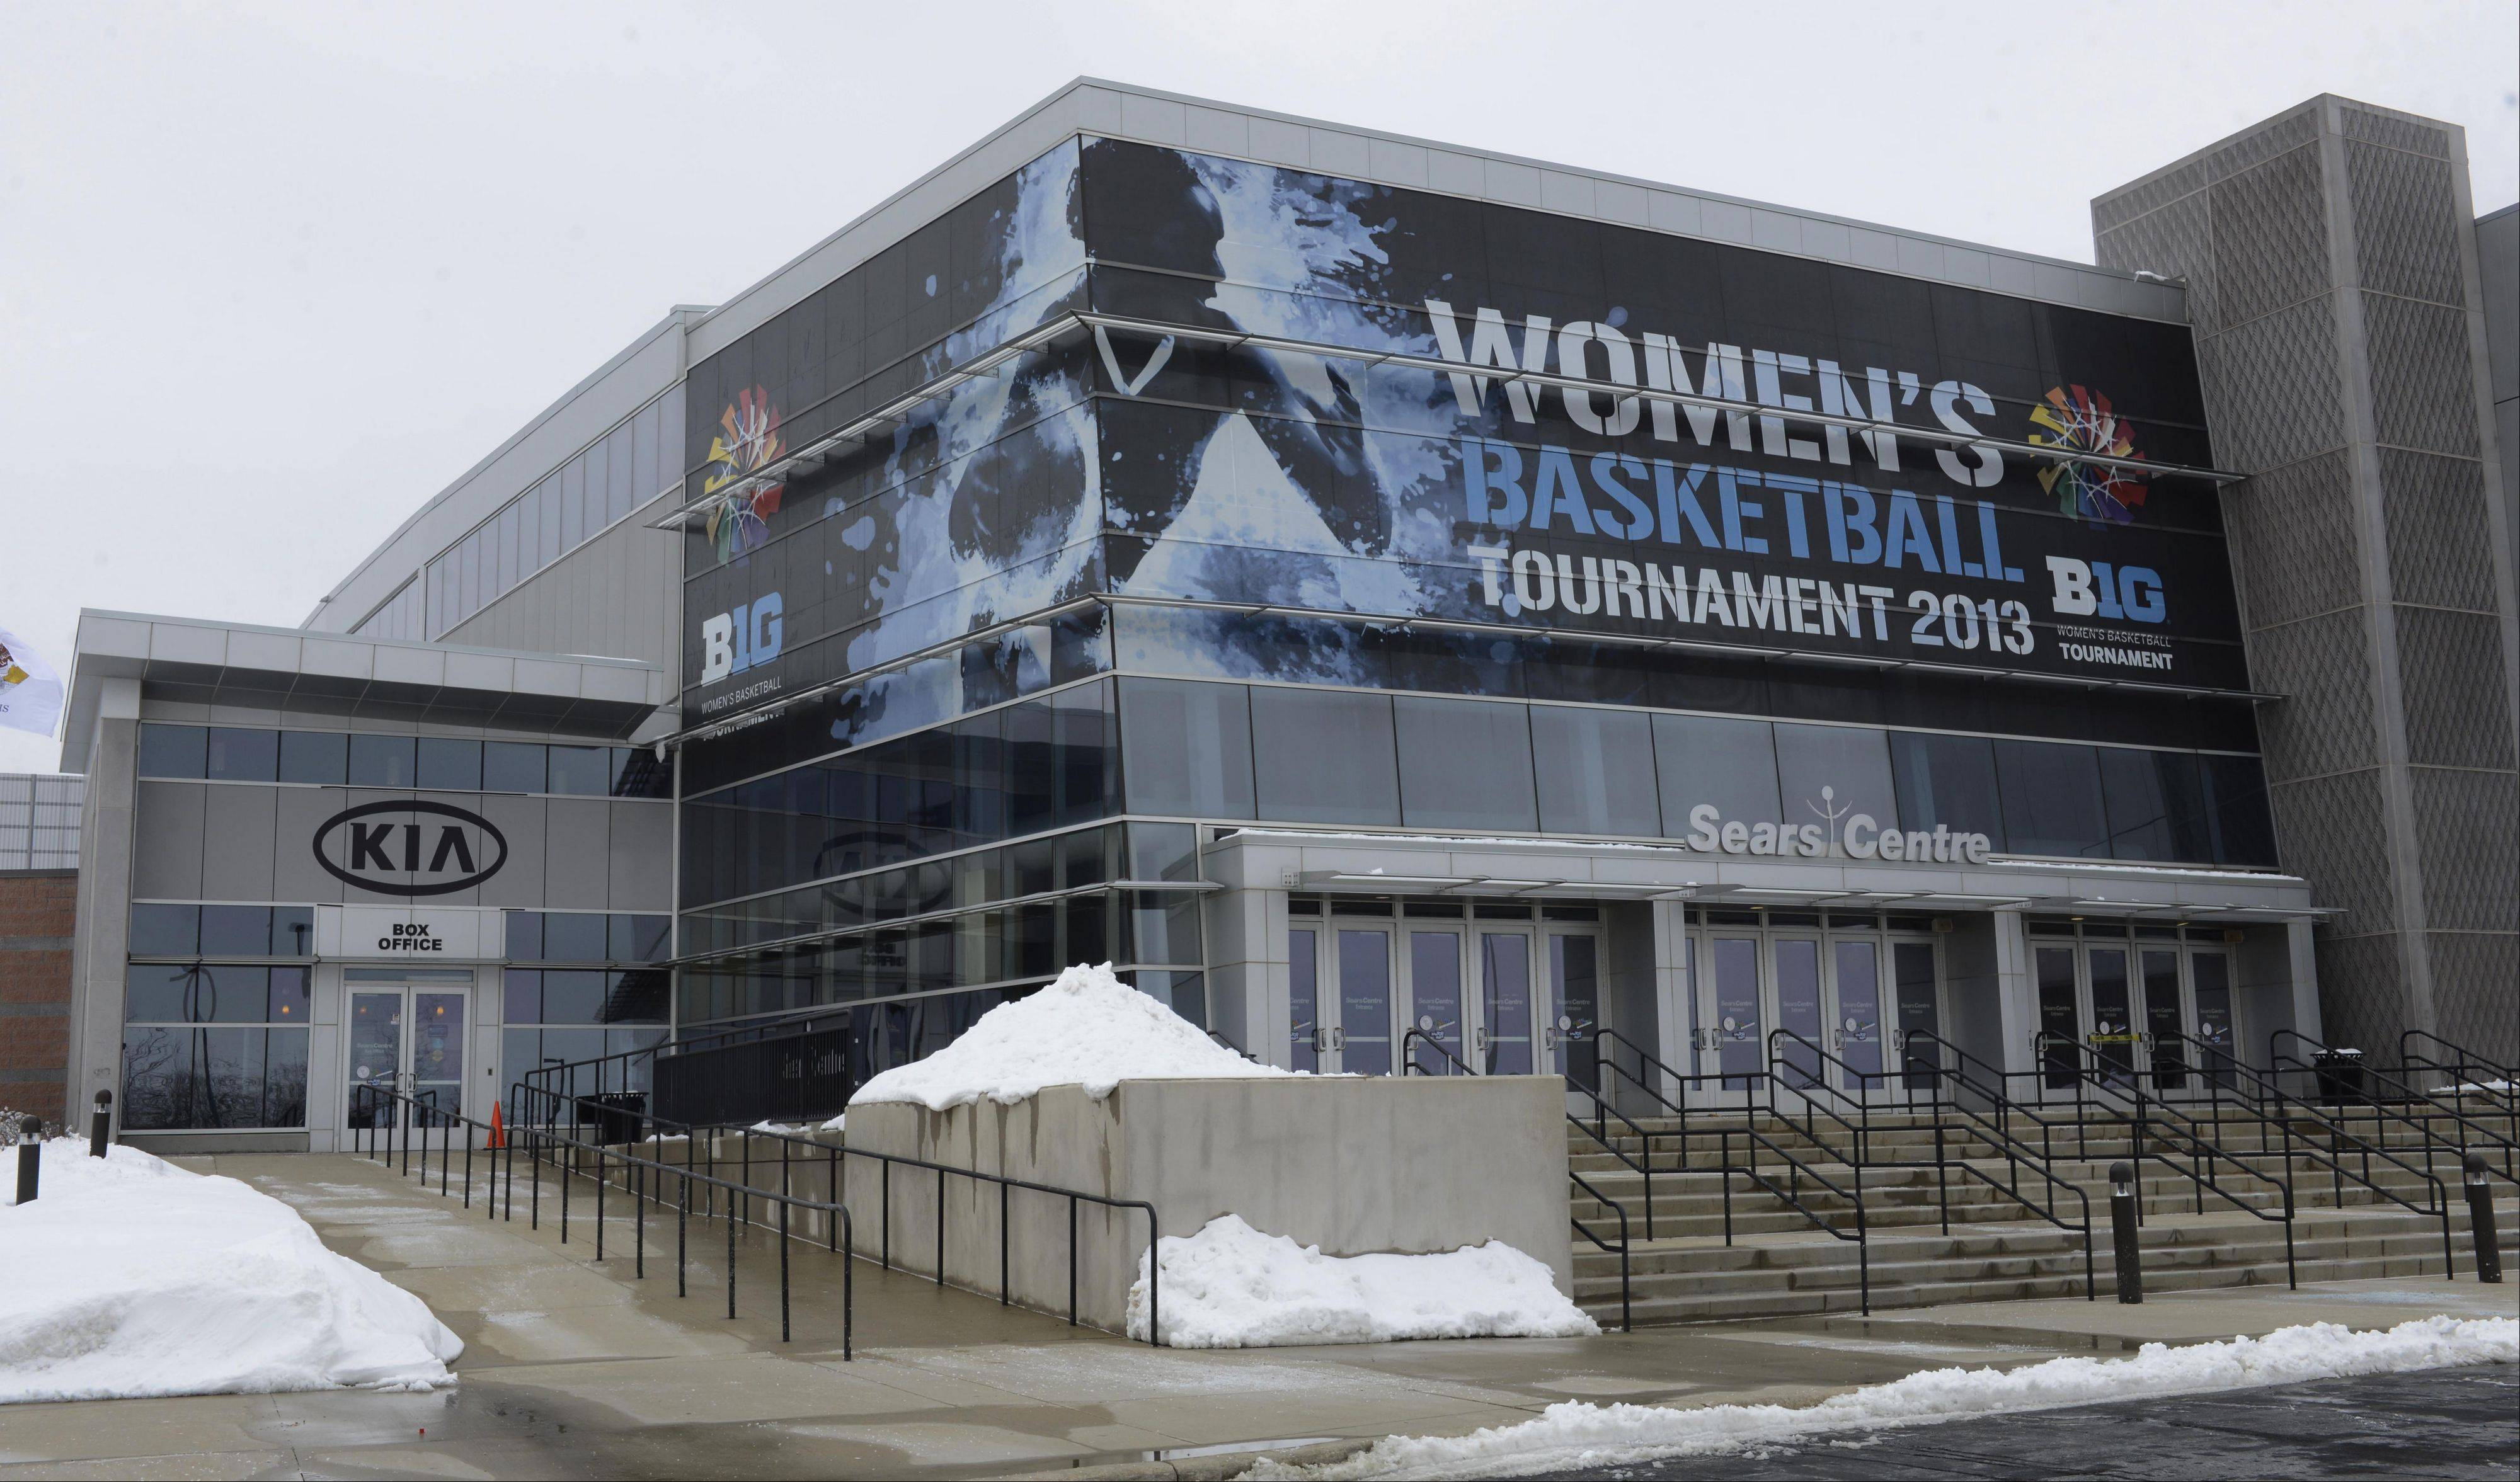 The Big Ten women's basketball tournament starts today at the Sears Centre in Hoffman Estates. Penn State is the top seed.